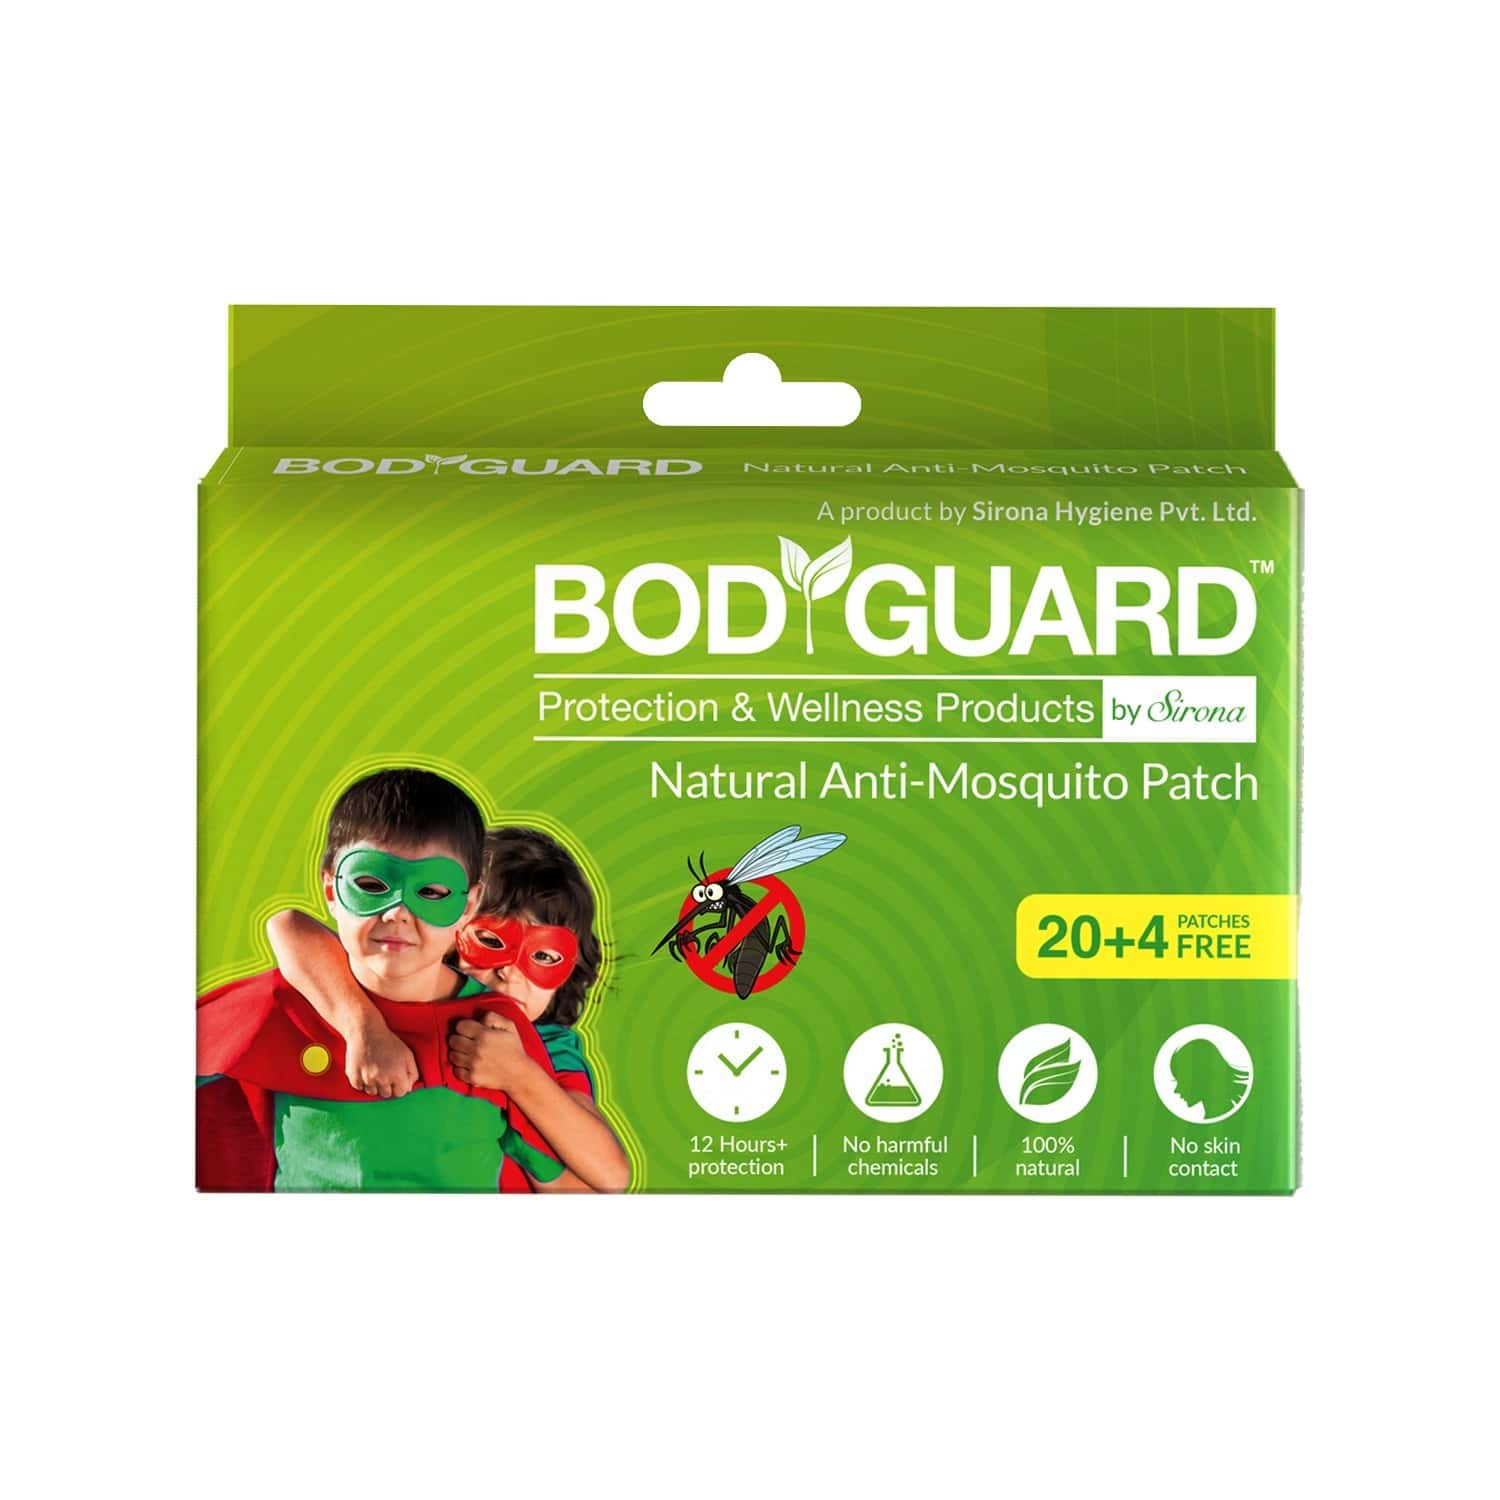 Bodyguard Premium Natural Anti Mosquito Patch Packet Of 20 + 4 Patches